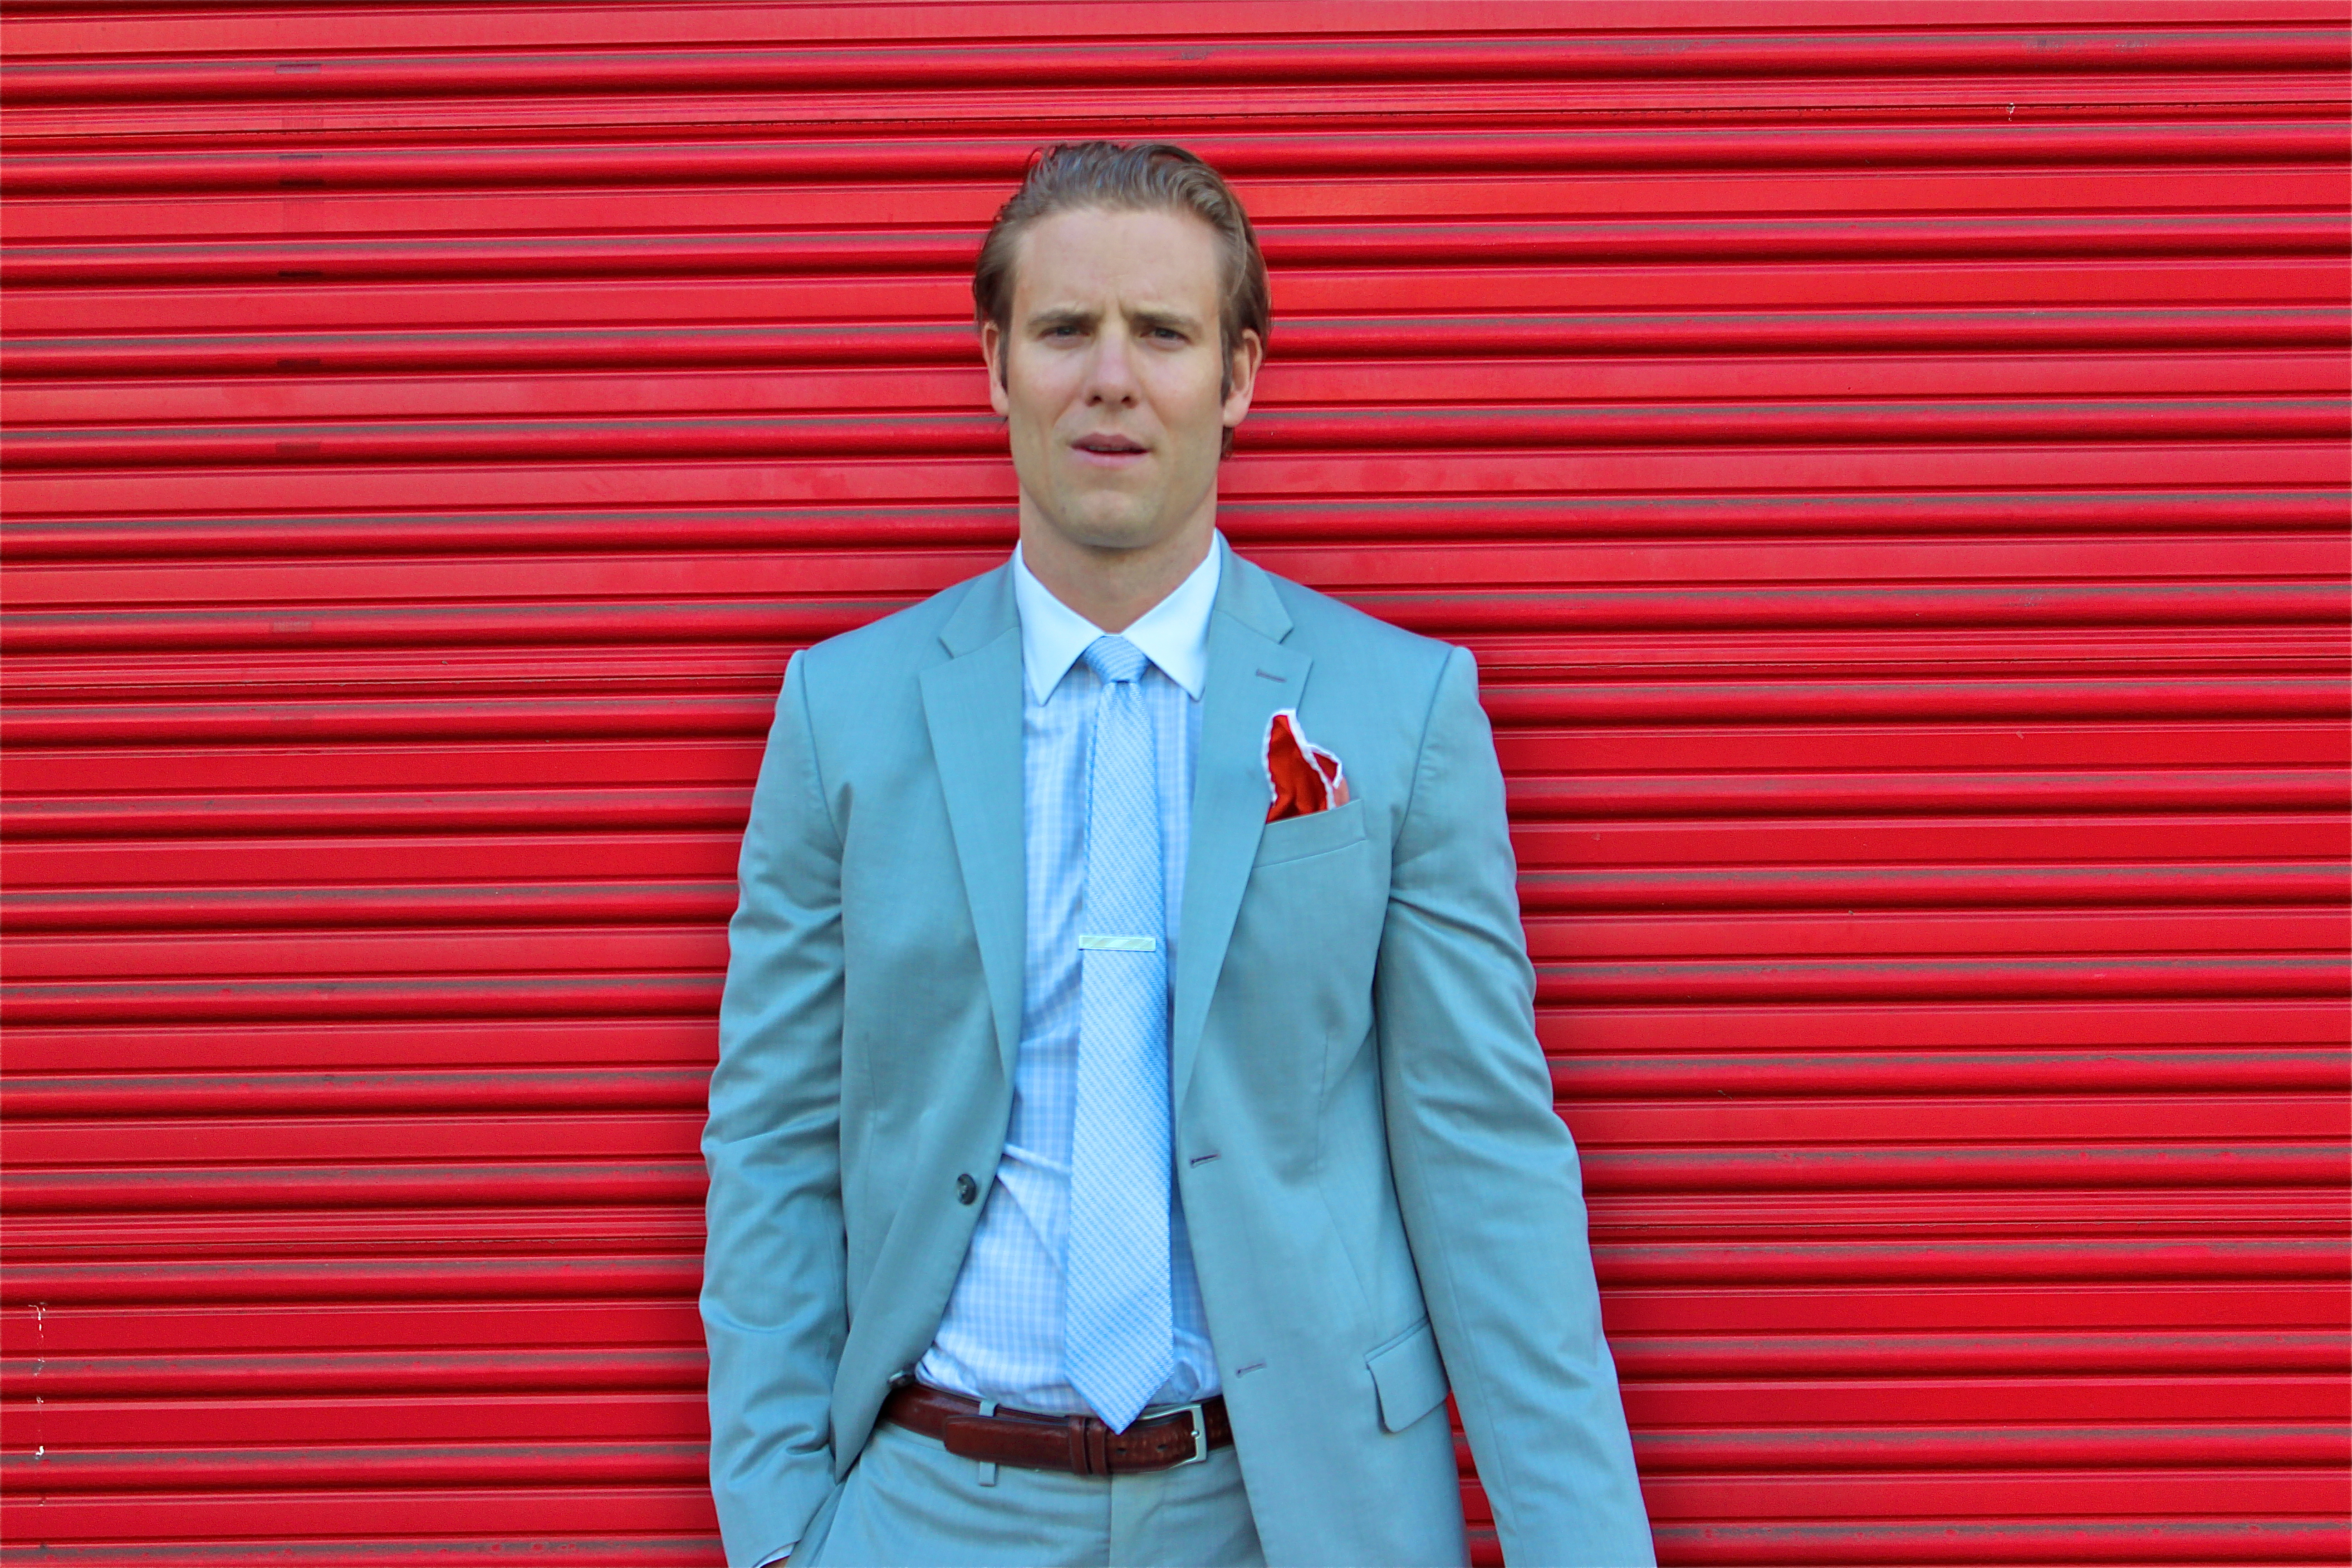 personal style profile marc crawford